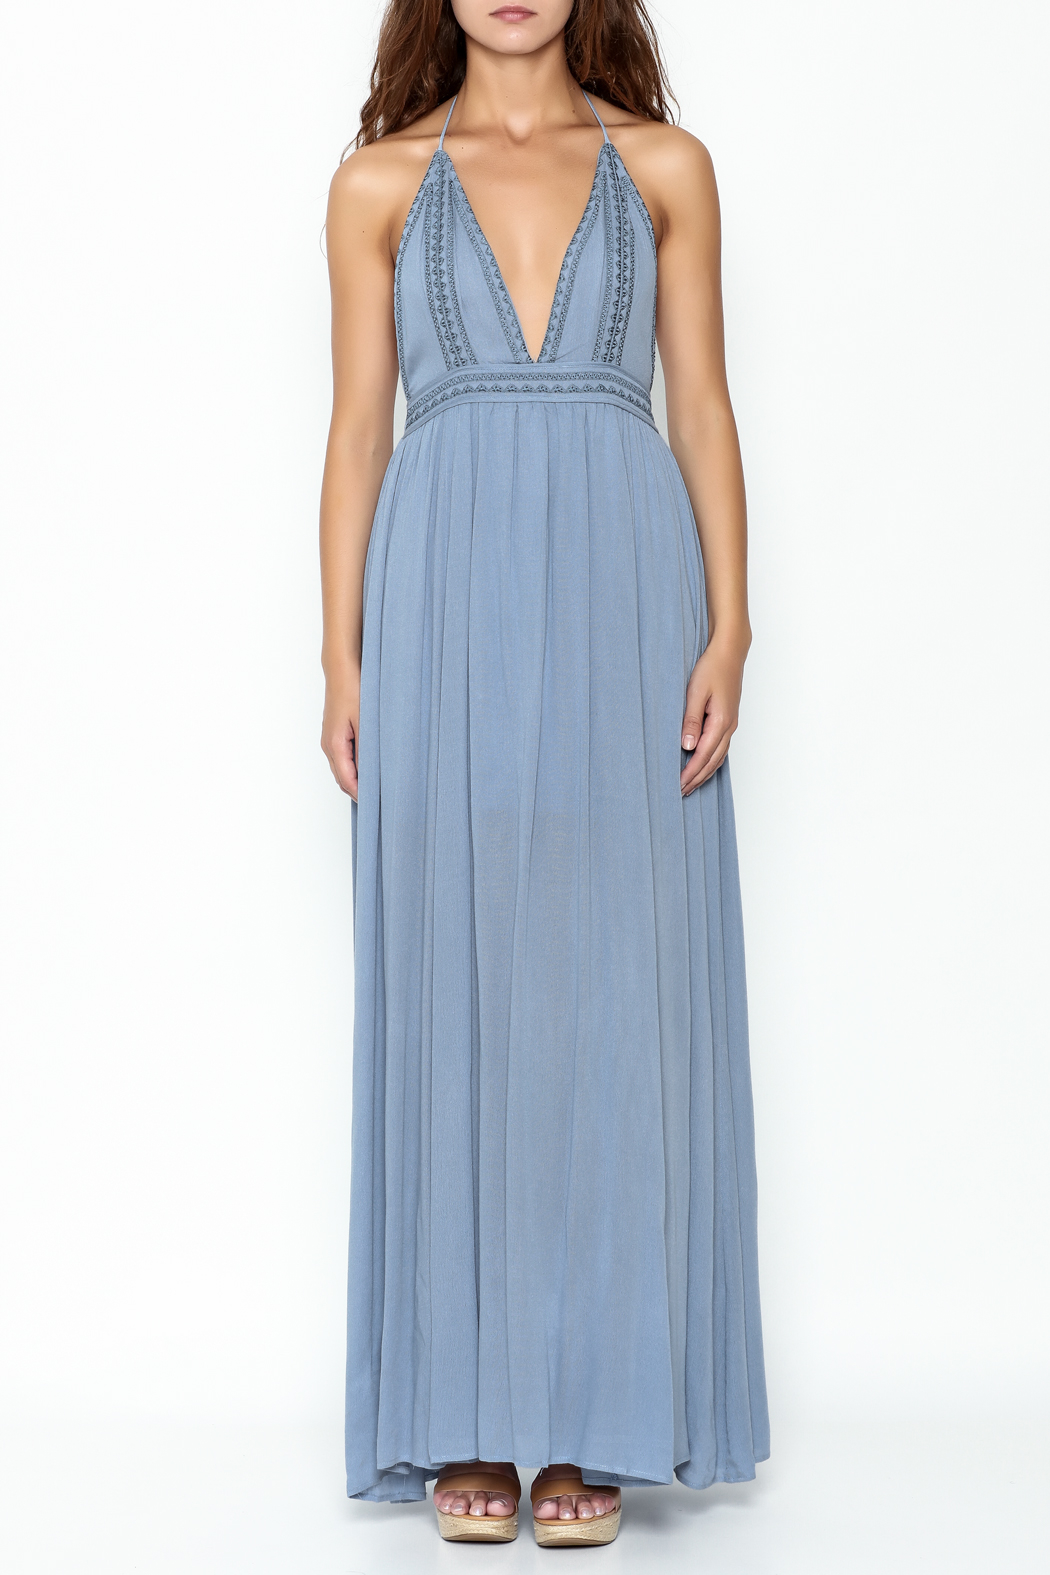 Hommage Skylar Maxi Dress - Main Image